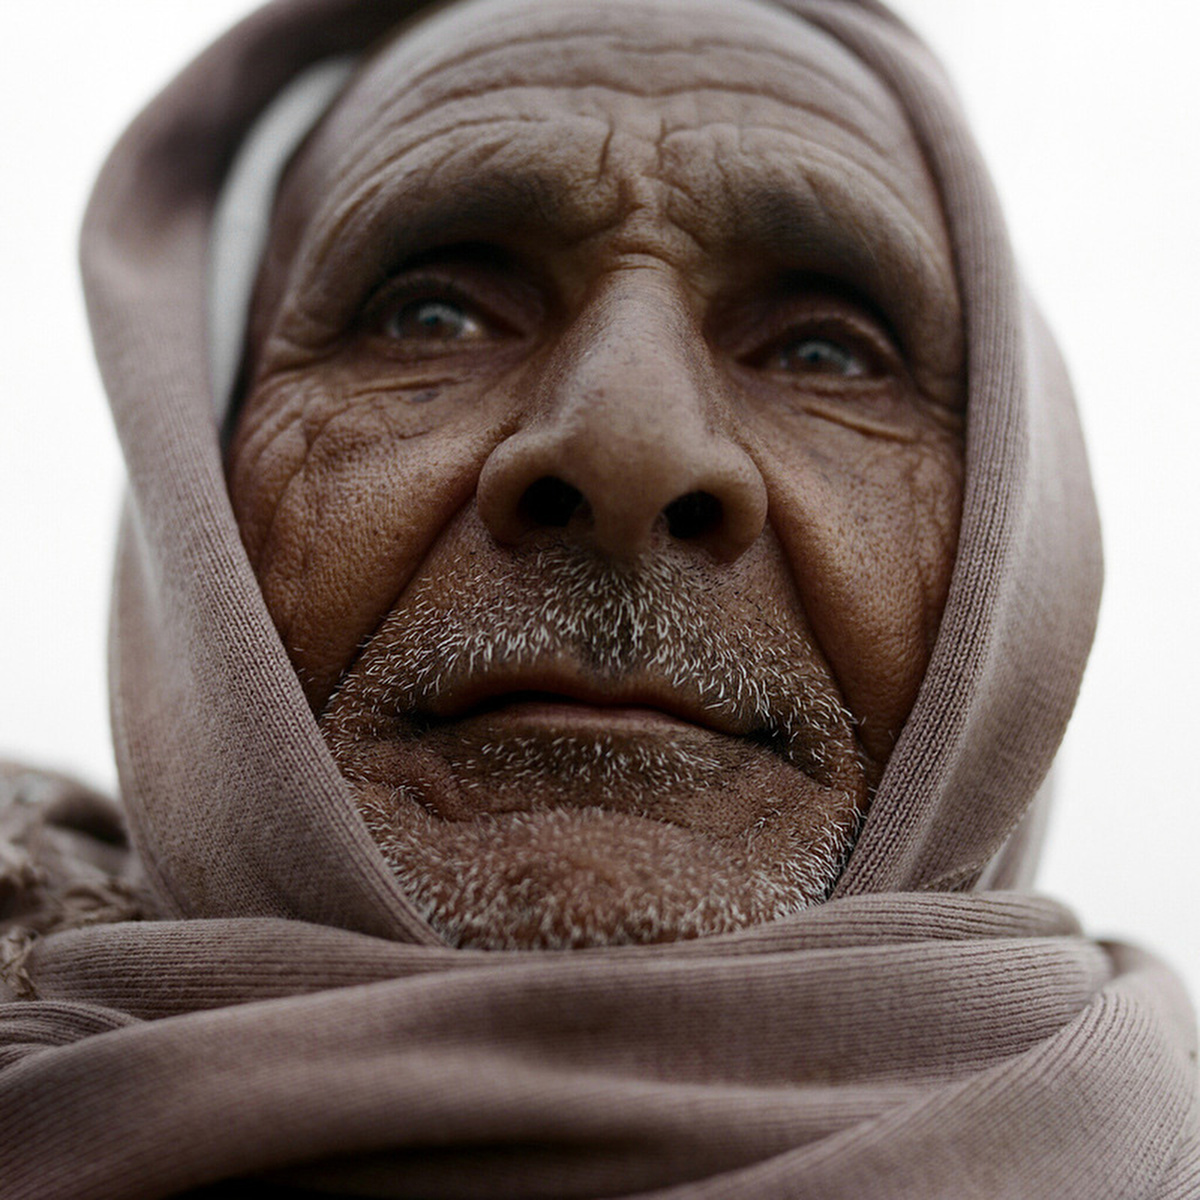 Hassan Mohamed al-Sae'edy, 60, is a father of six. Farming is his only means for supporting his family: {quote}A farmer is a farmer,{quote} he said. {quote}I can't read or write, so how can I hold a pen and try to write?{quote}